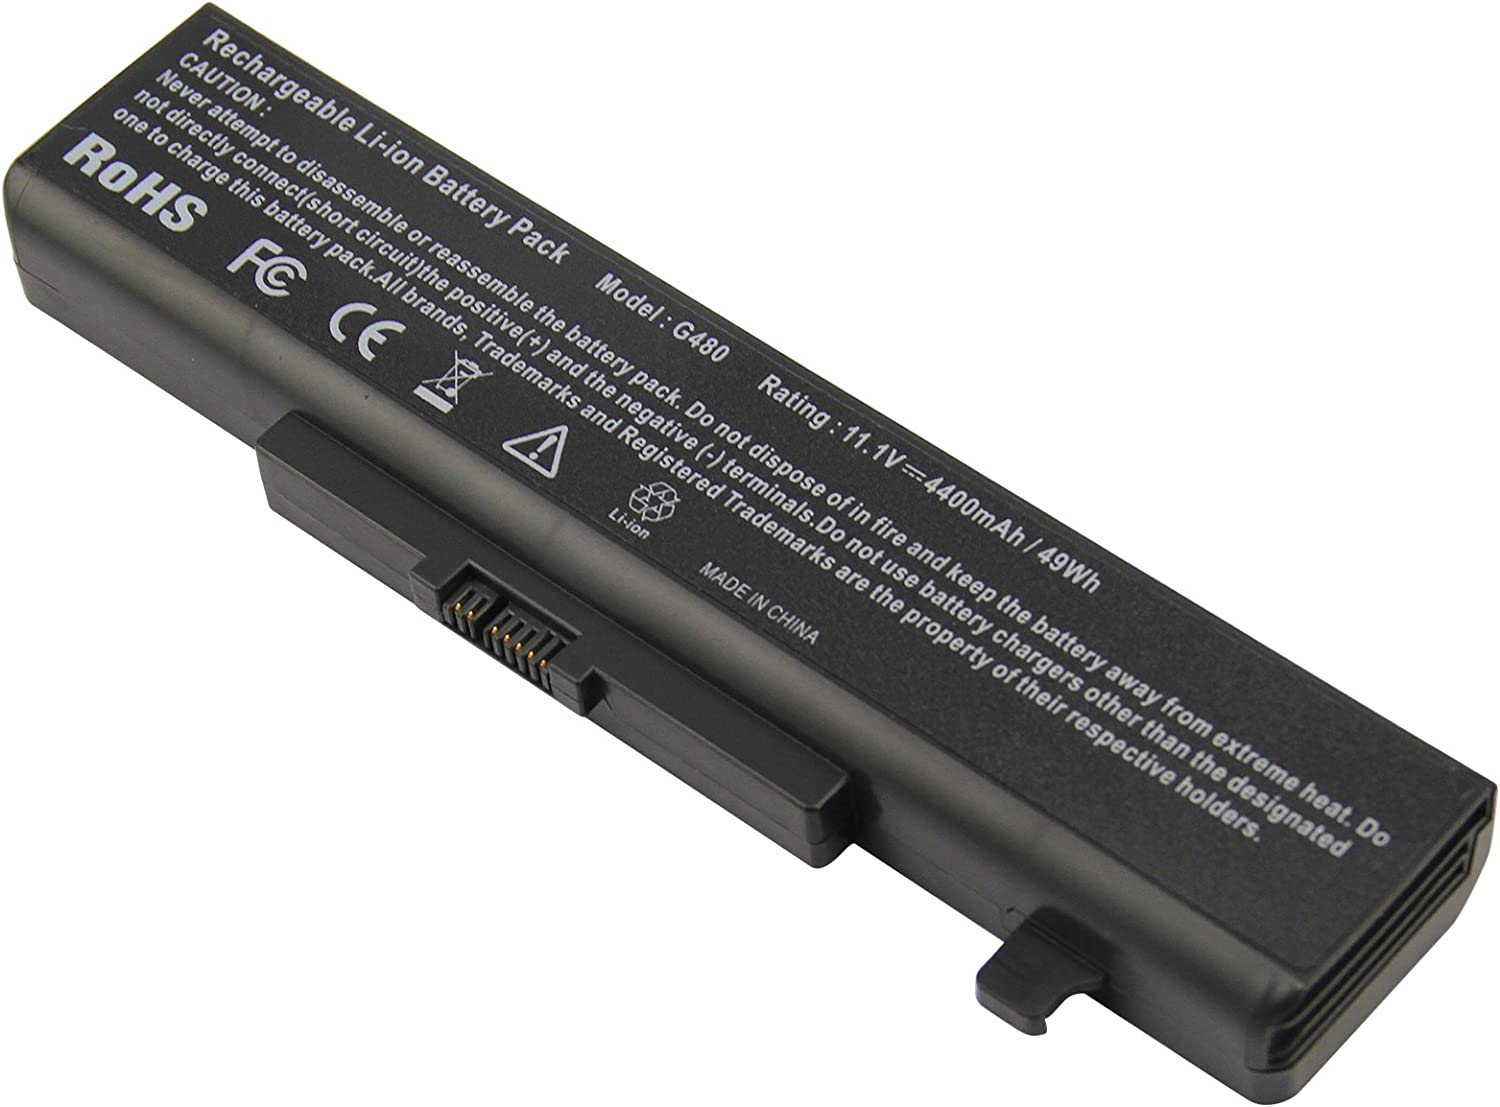 ARyee L11S6Y01 L11L6Y01 45N1043 Battery Laptop Battery Replacement for Lenovo IdeaPad G480 G585 Y480 Y485 Y580 Z380 Z580 G485 G580 Y480N Y485N Y580N Z480 Z585 Series 0A36311 45N1043